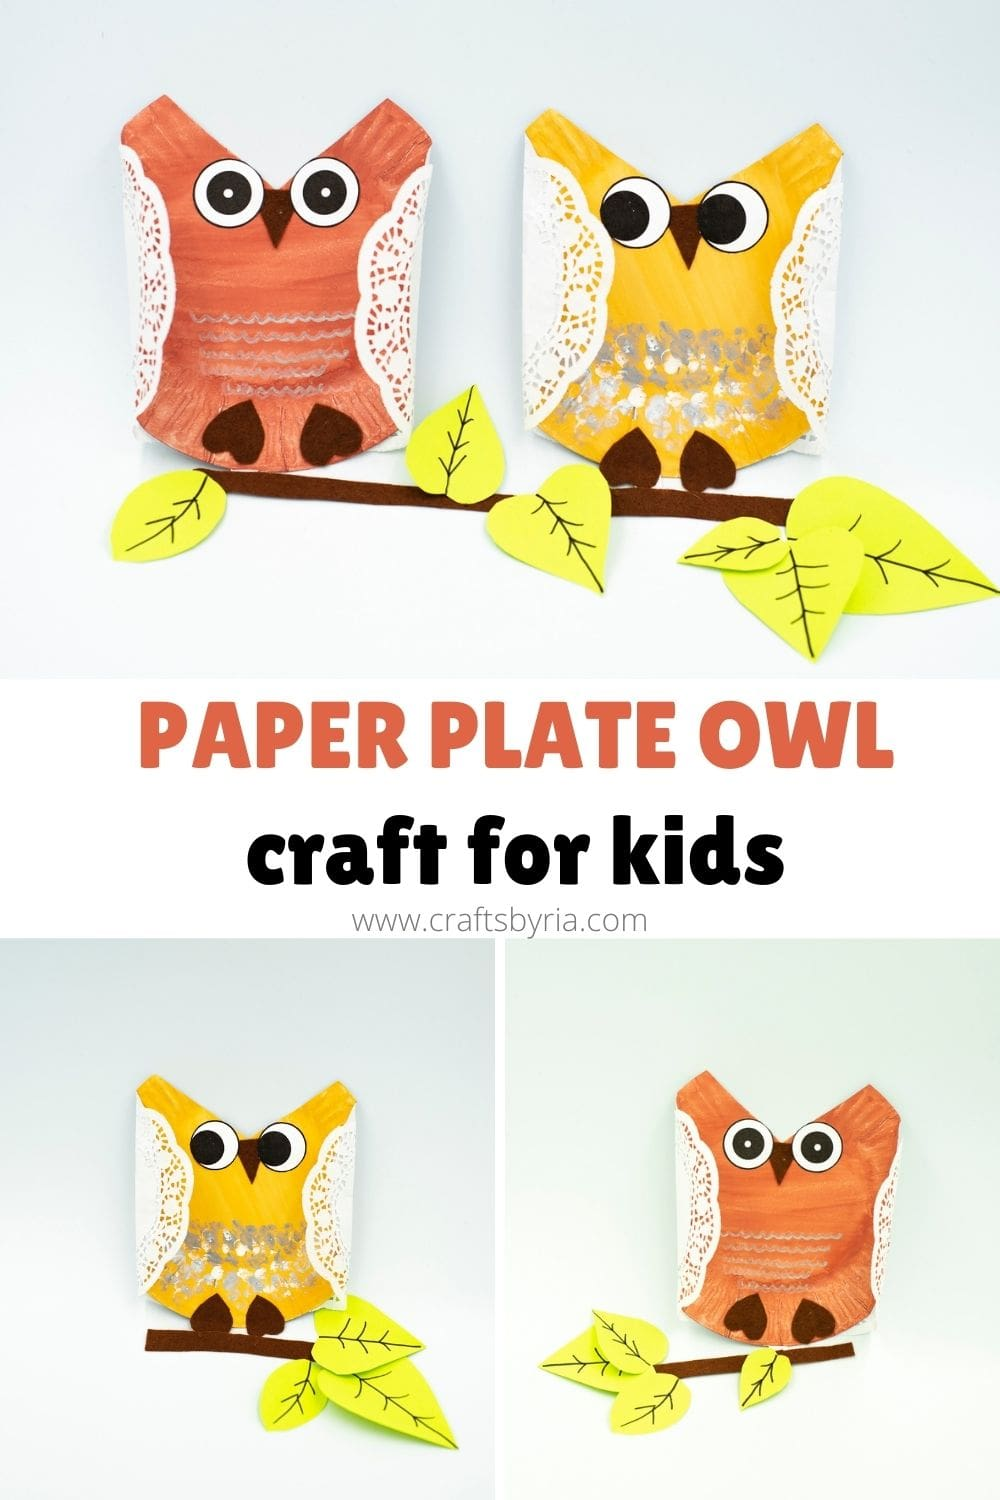 Paper plate owl craft for kids-image for pinterest